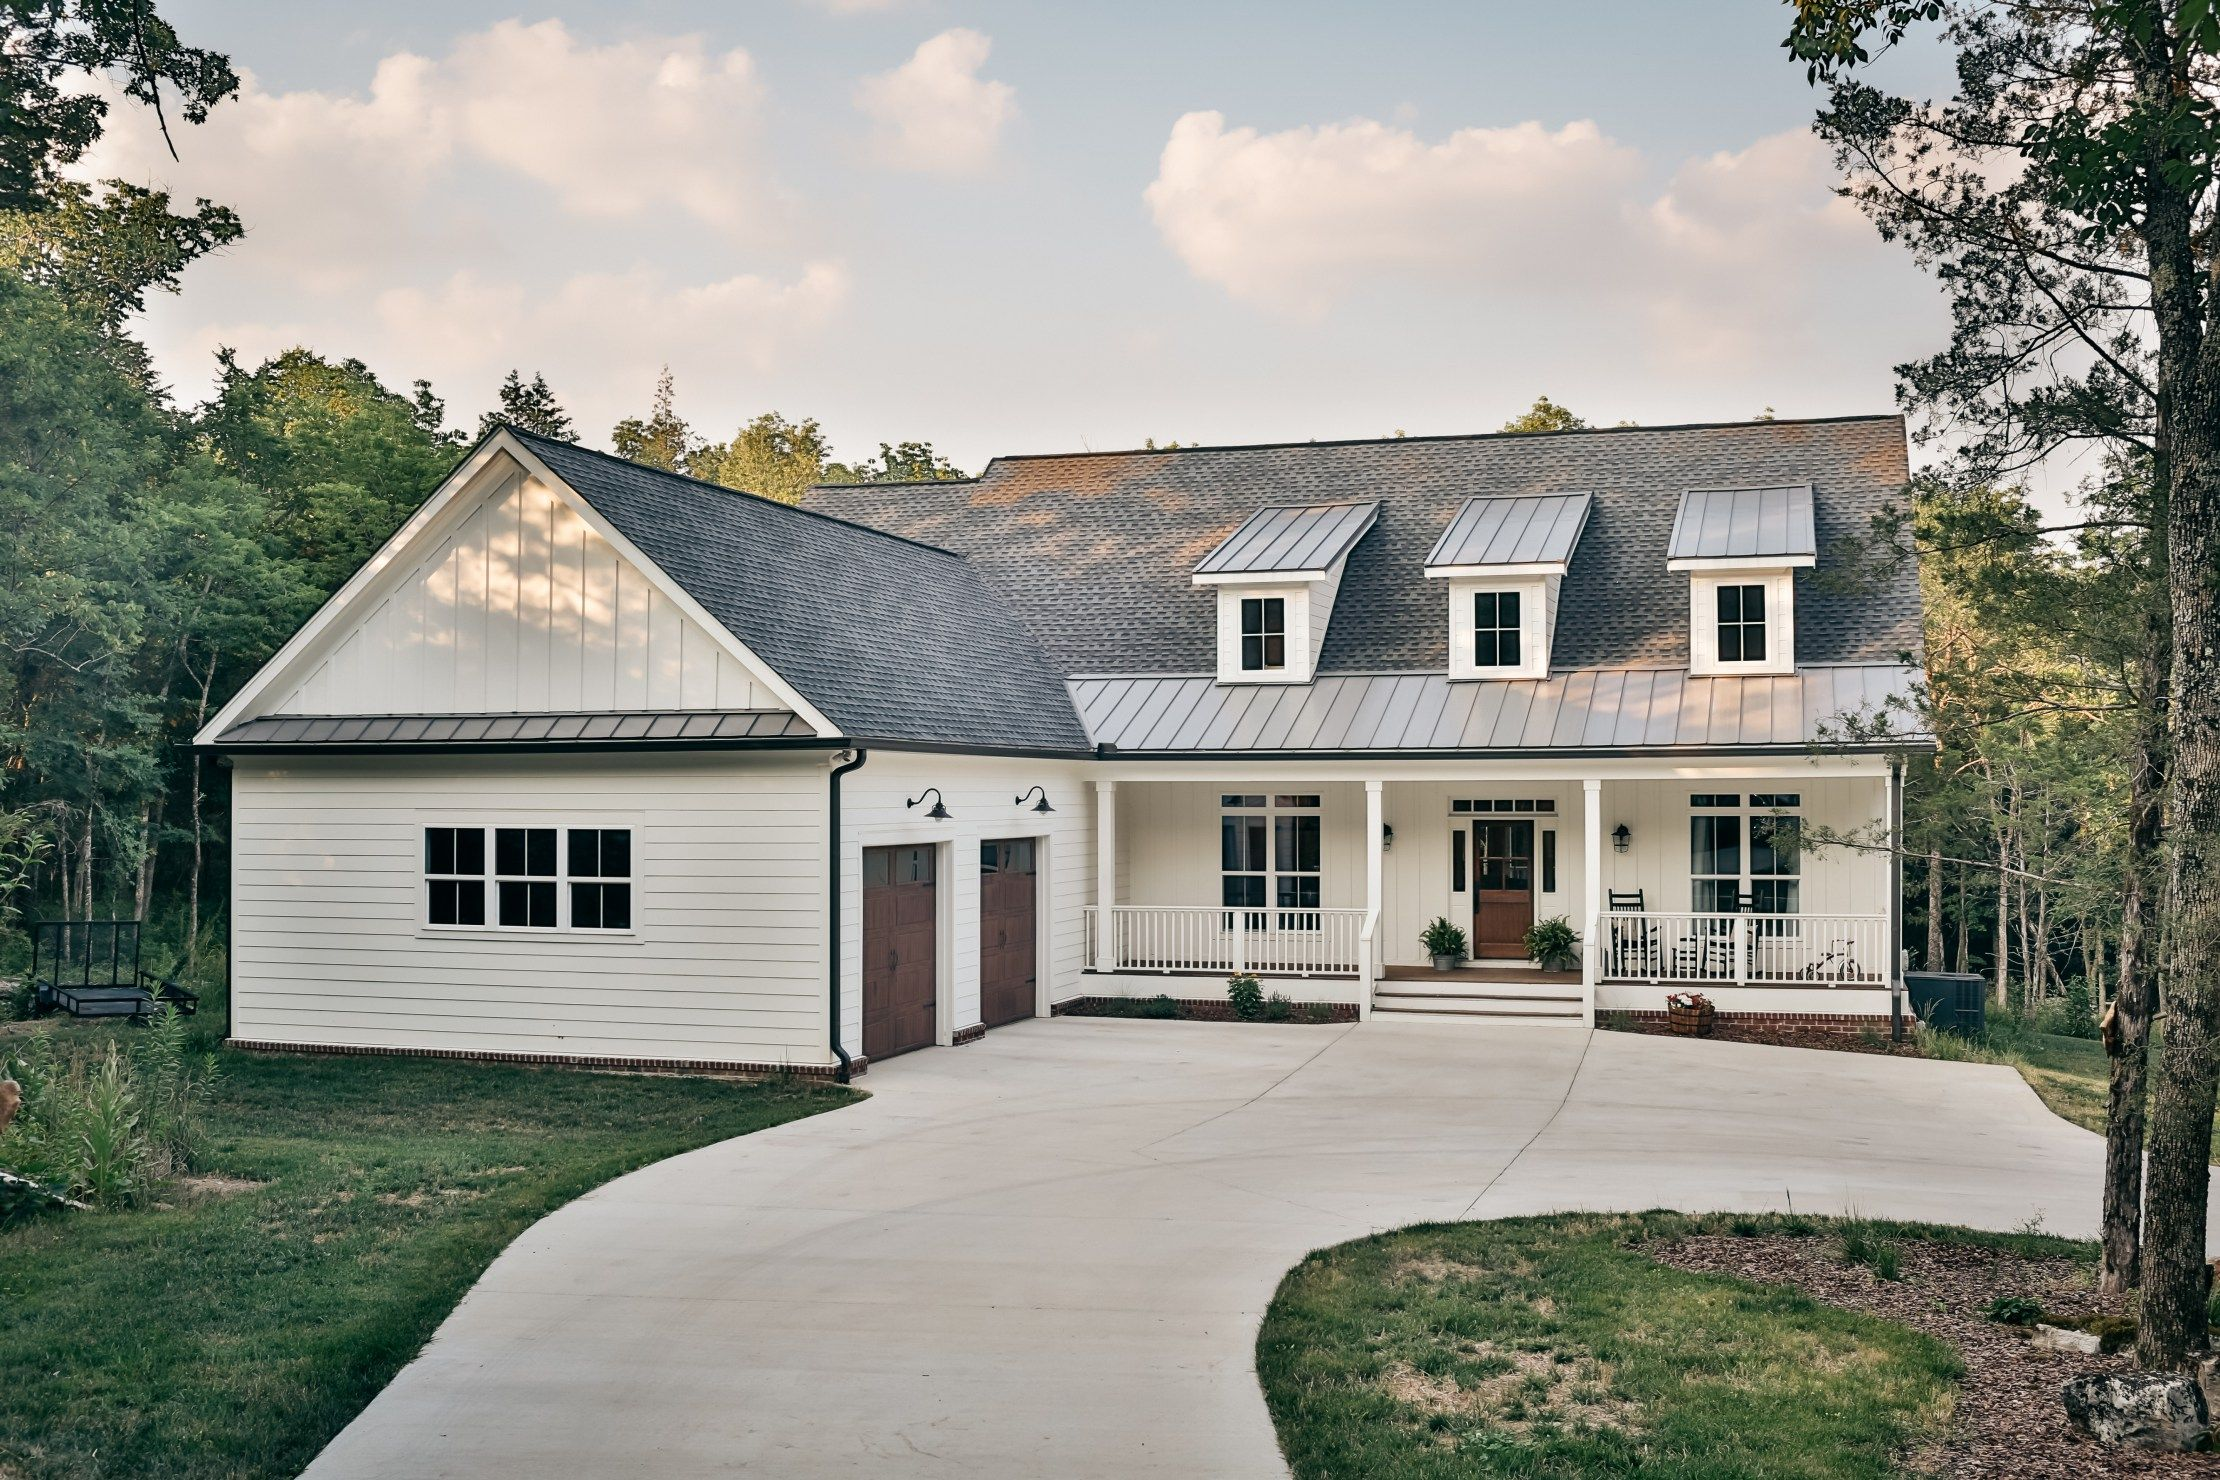 farmhouse friday our favorite exterior design choices besties